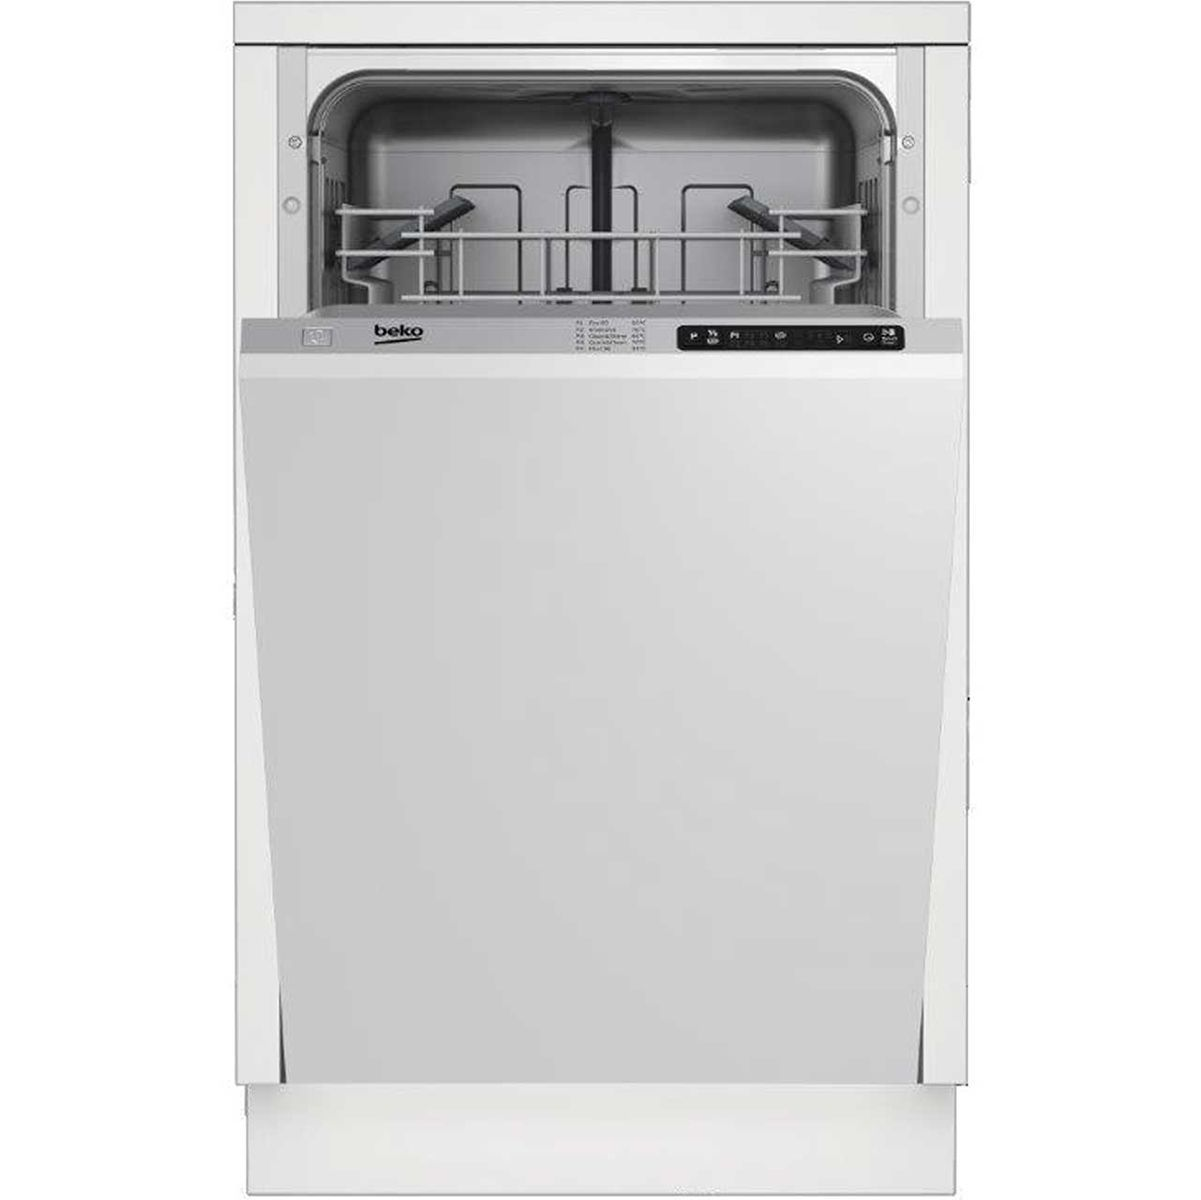 Slimline Kitchen Appliances Dishwashers Home Appliances Electrical Security